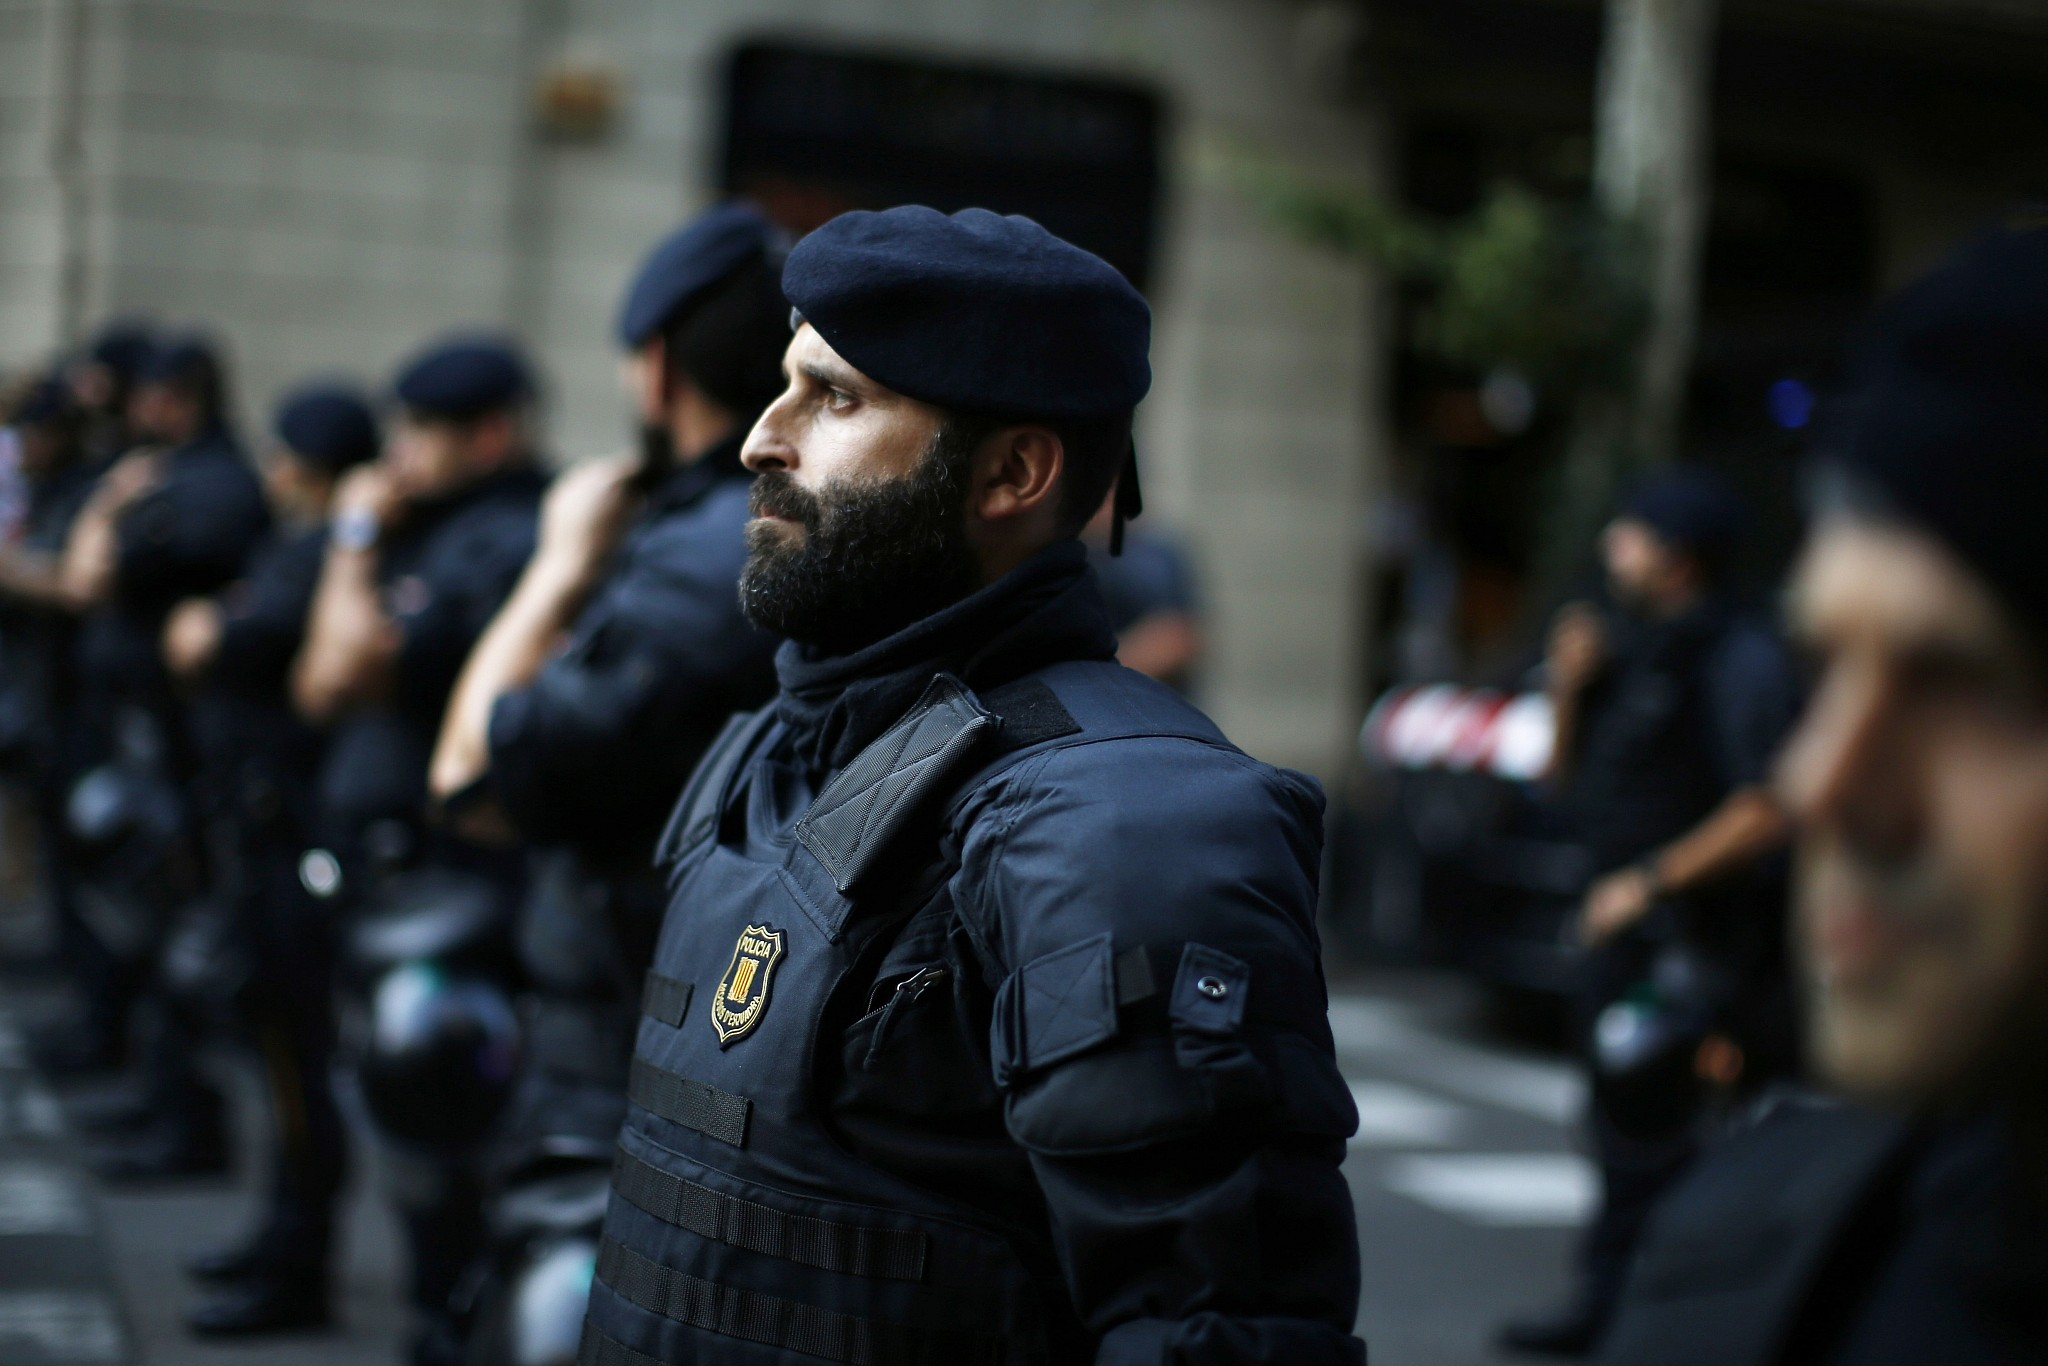 'Allahu Akbar!': Knife-Man Shot Dead After Attacking Spanish Police